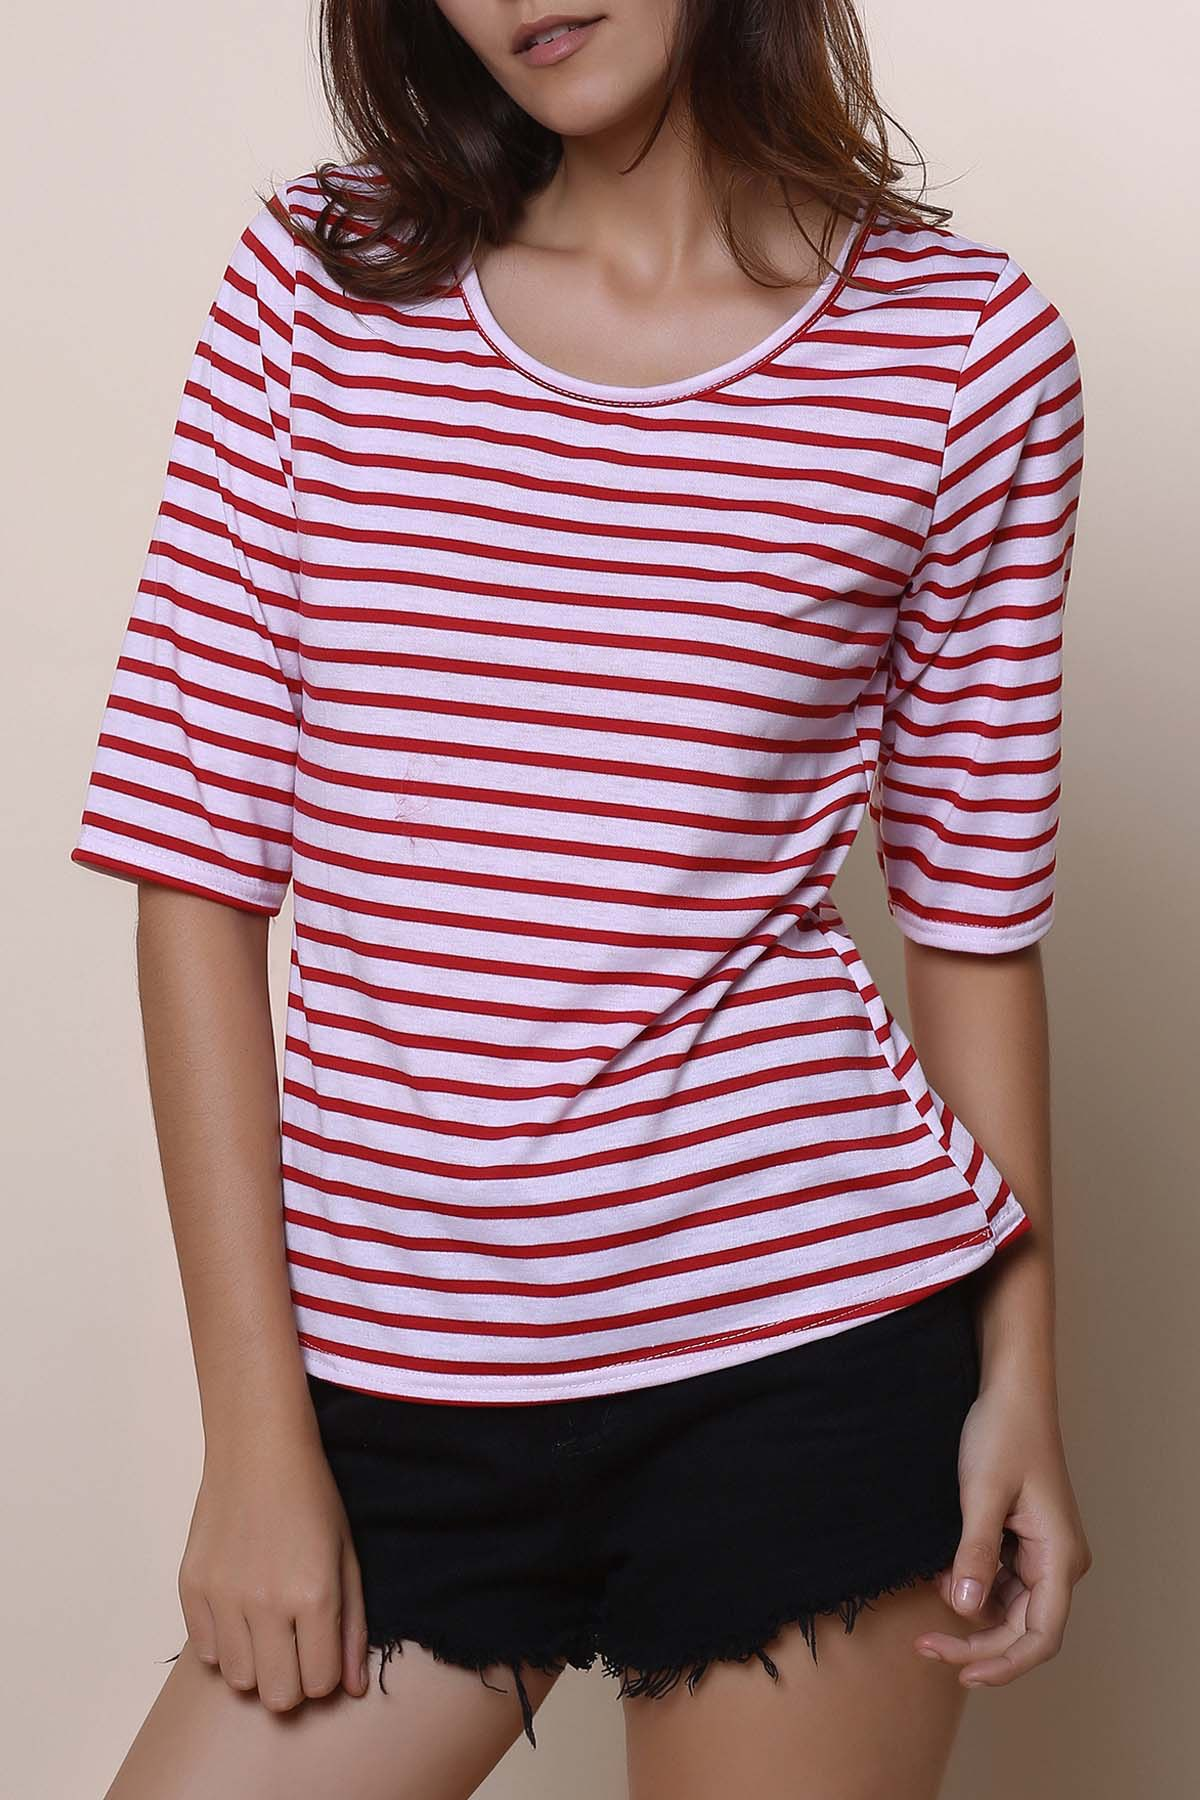 Affordable Casual Scoop Neck Half Sleeve Striped Women's T-Shirt